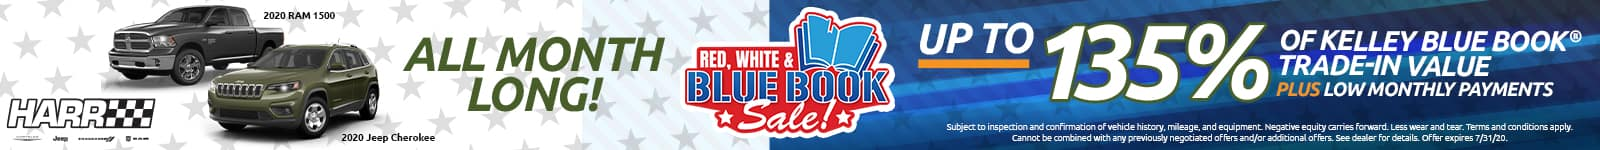 Red White & Bluebook